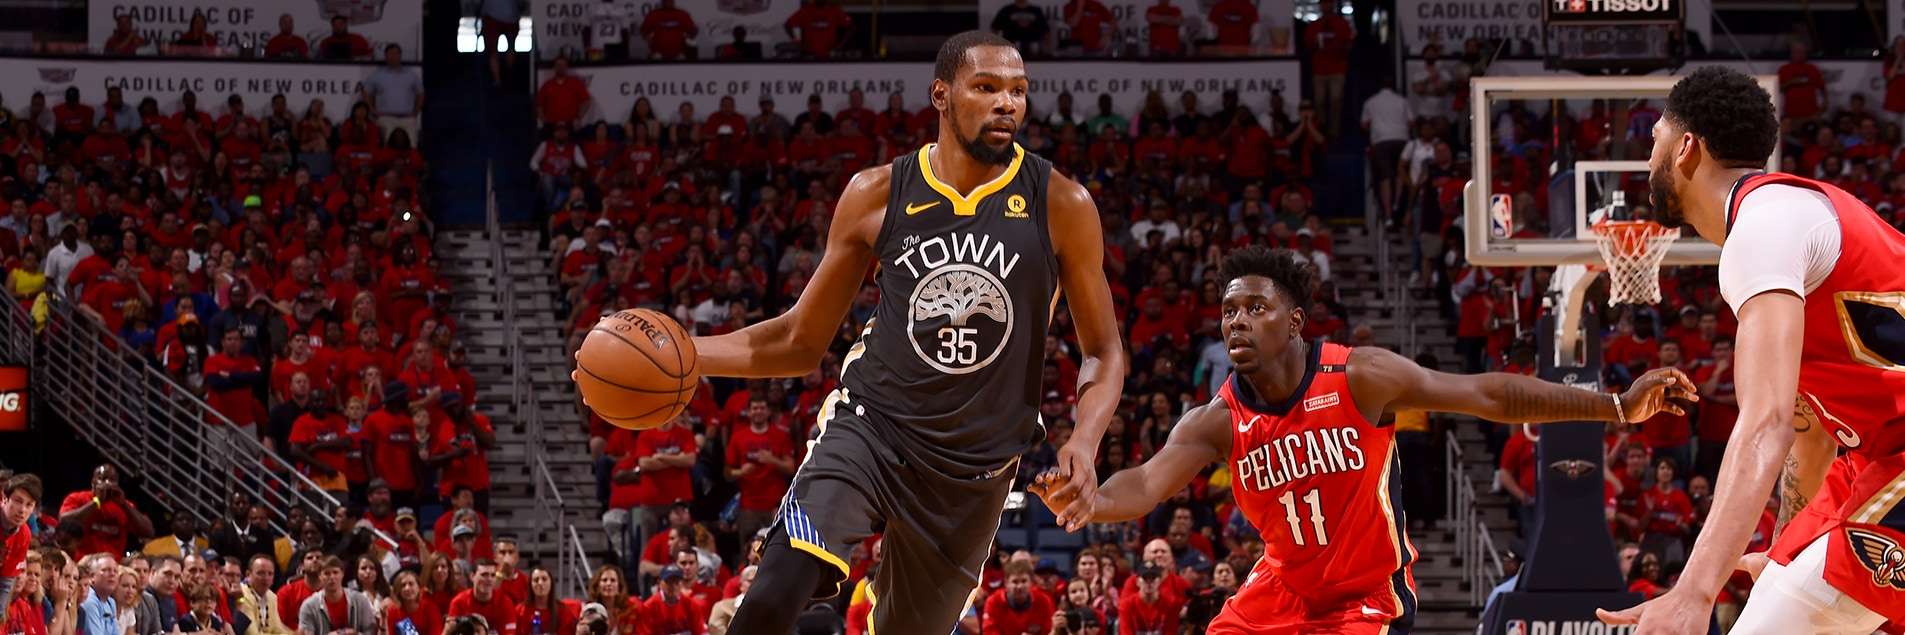 Durant, Dubs Dominate Game 4 in New Orleans | Golden State Warriors